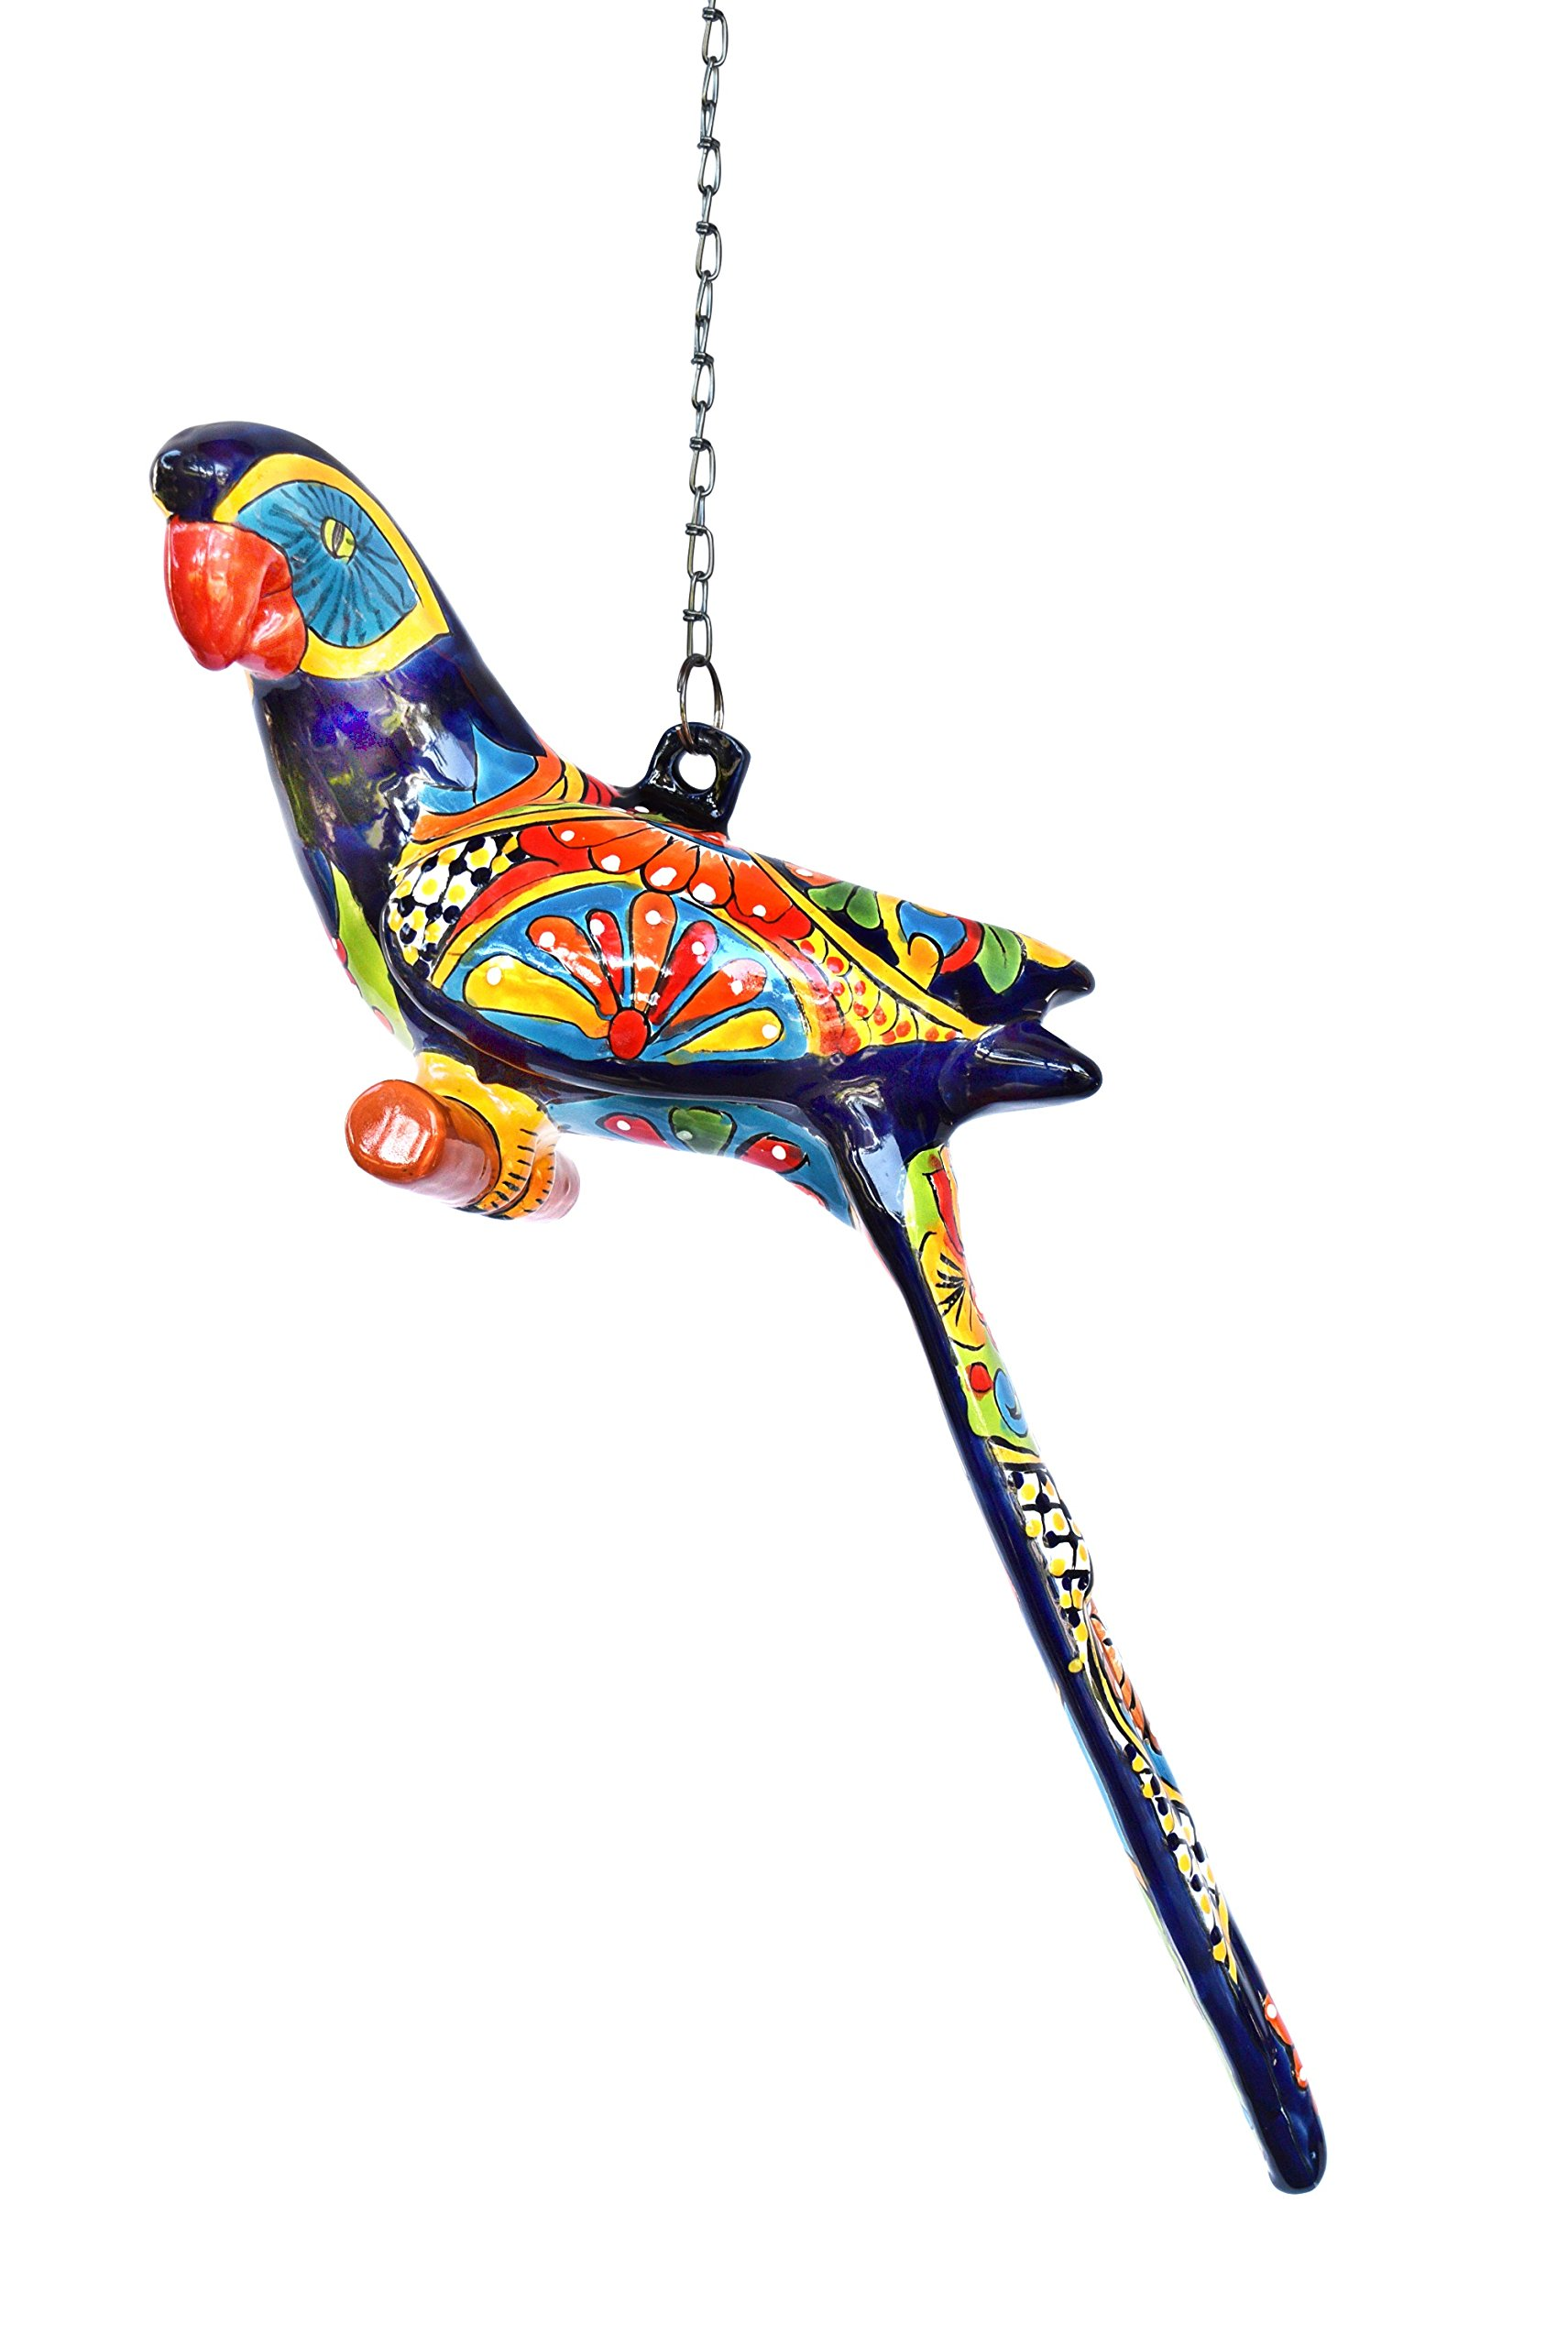 Parrot Ceramic Talavera Hanging Ceiling Patio Decoration Home Kitchen Patio Garden Decor